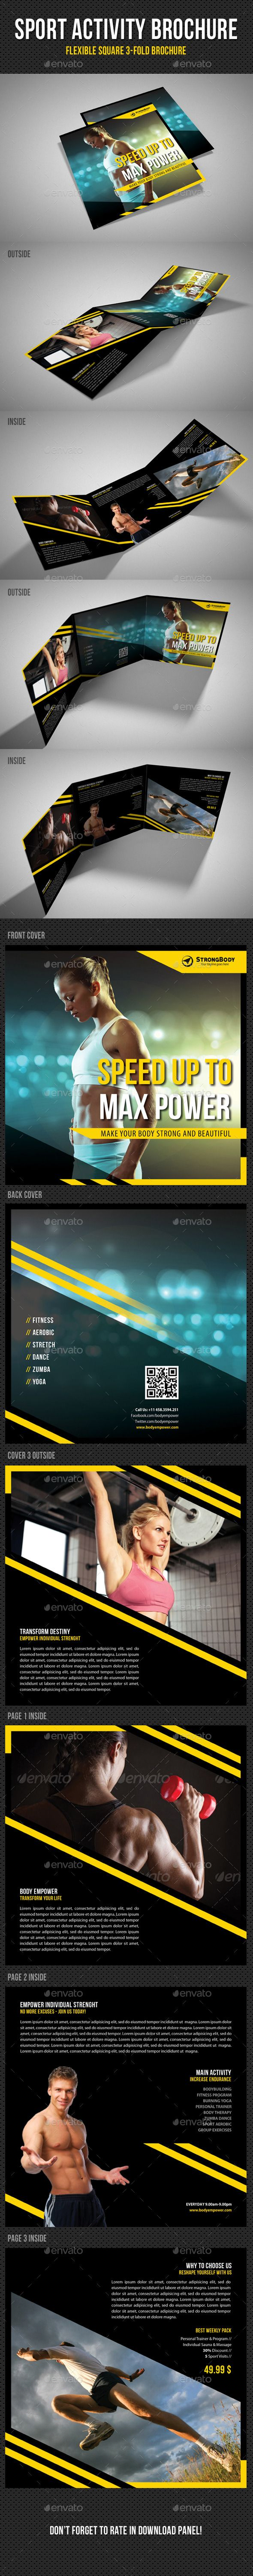 Sport Activity Square 3Fold Brochure V04 — Photoshop PSD #spa #brand • Available here → https://graphicriver.net/item/sport-activity-square-3fold-brochure-v04/11470014?ref=pxcr